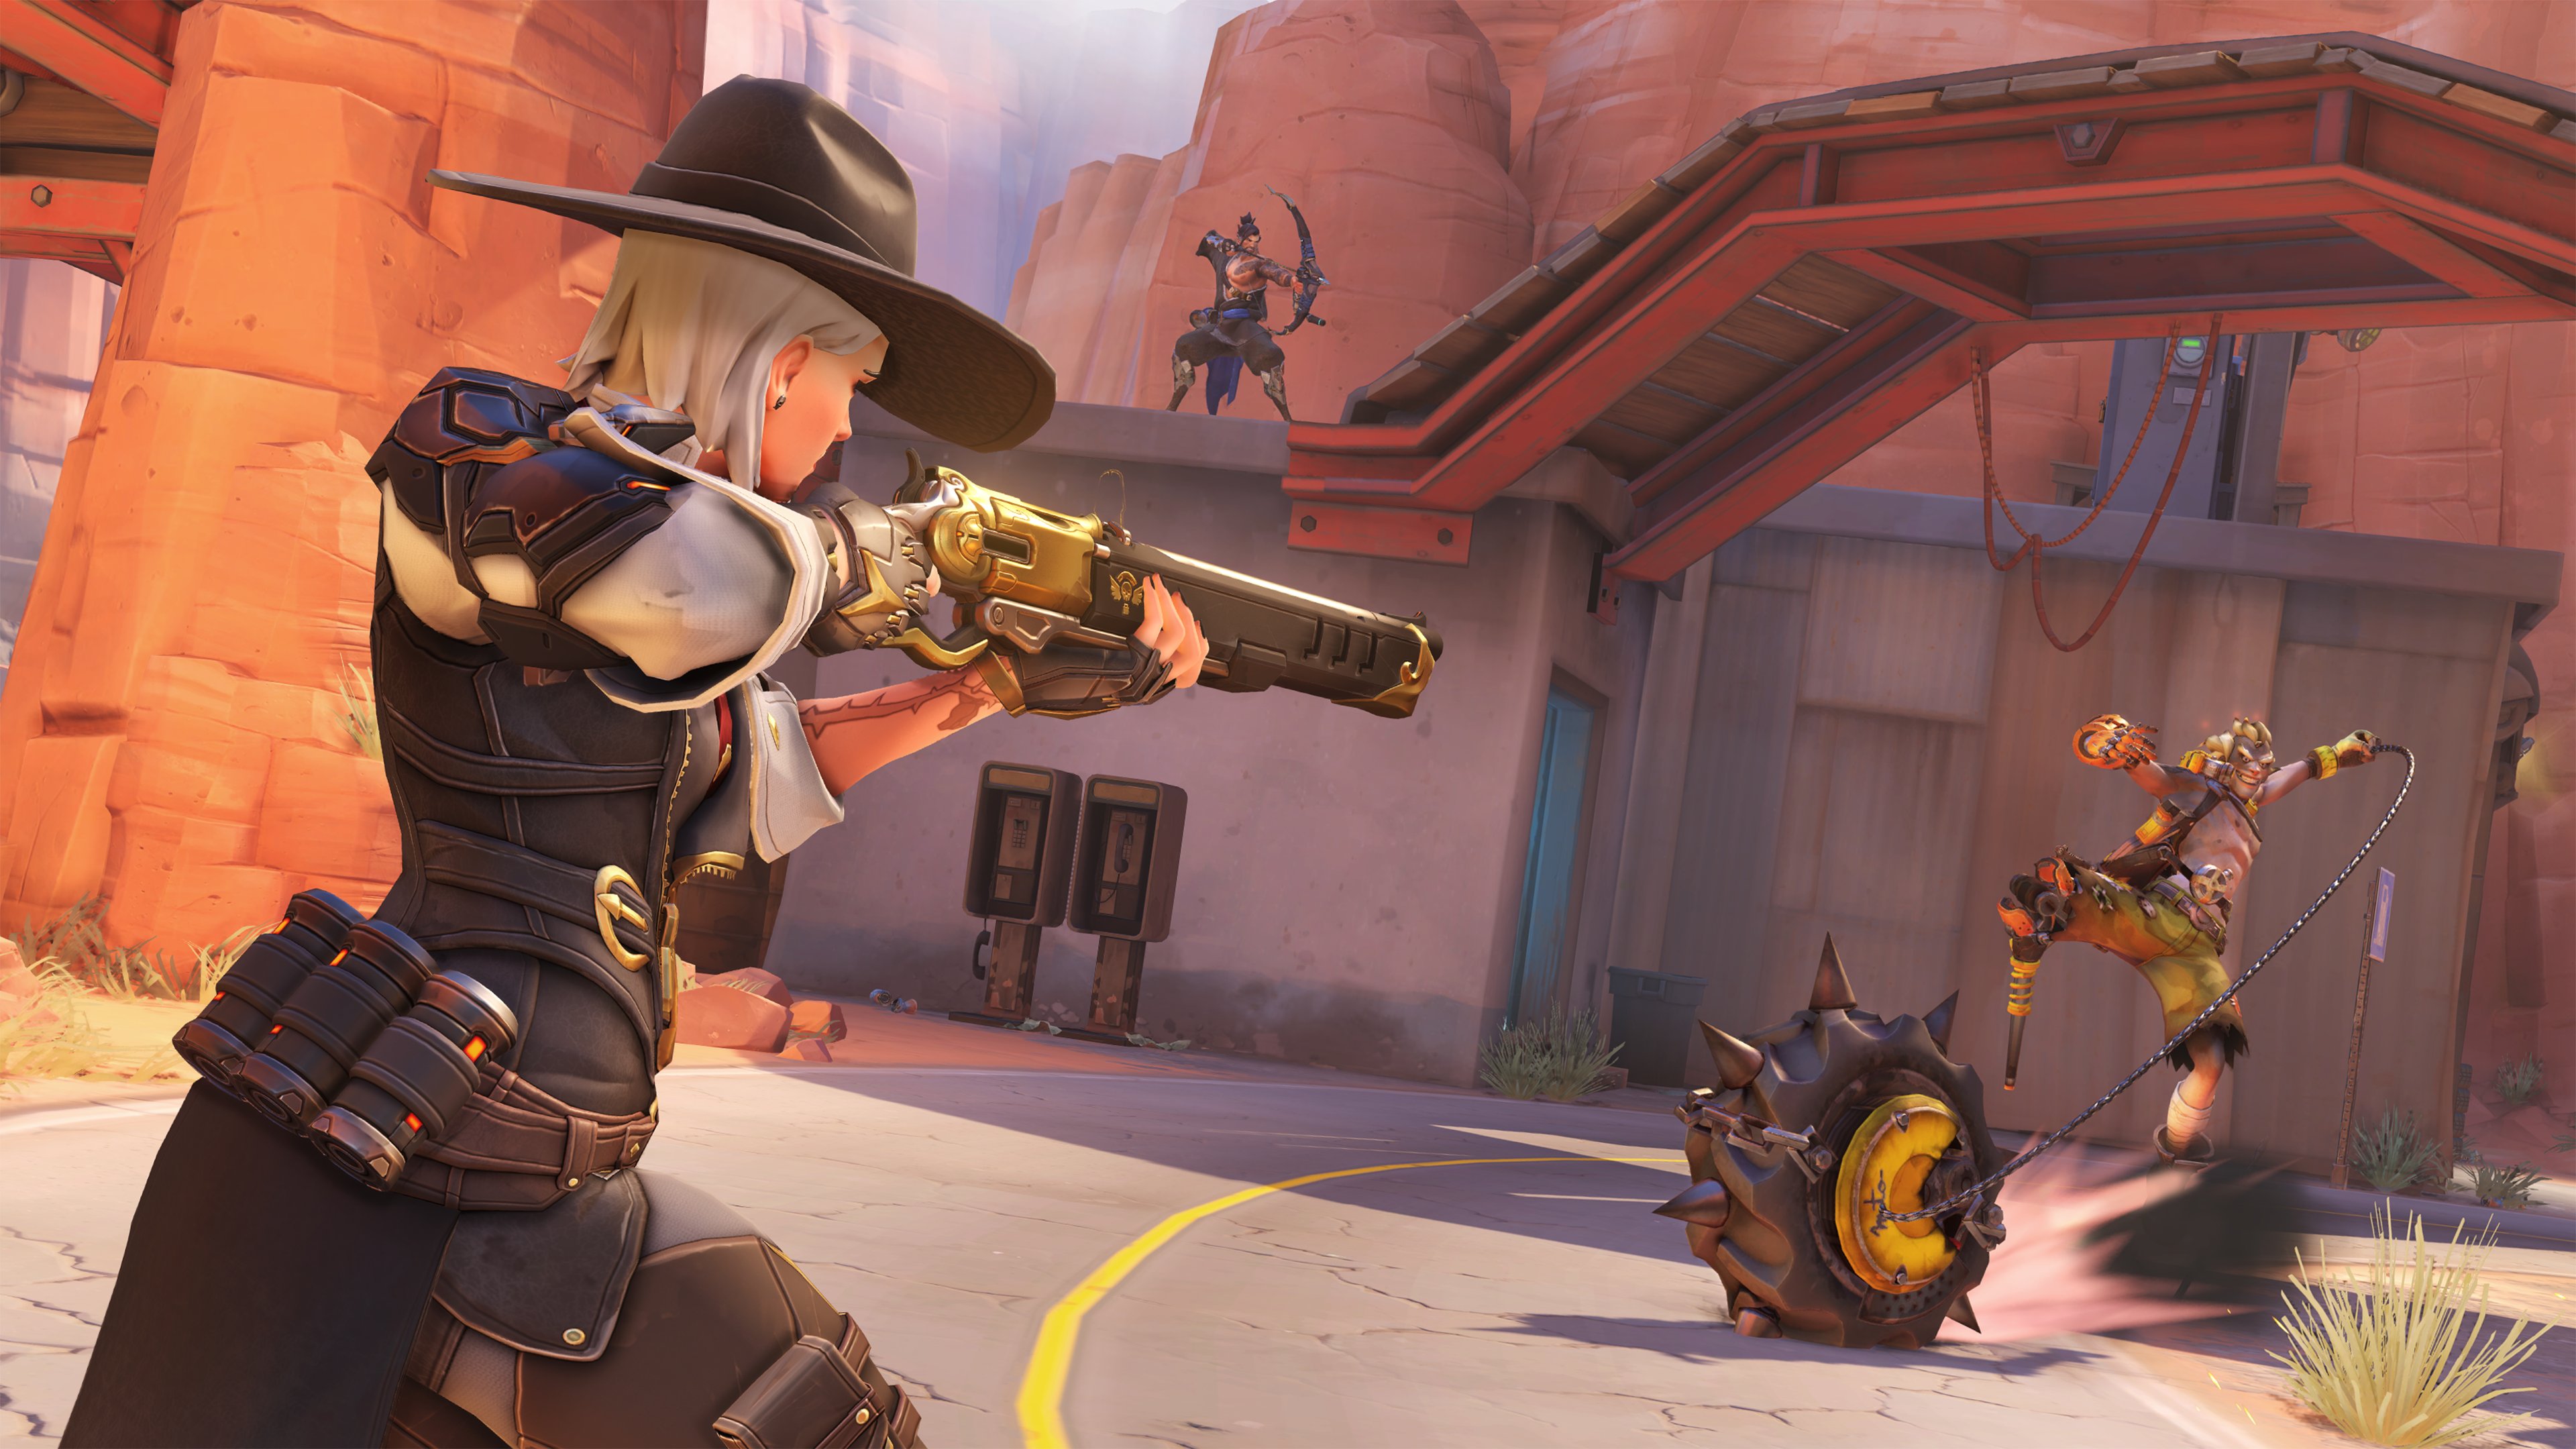 Overwatch creator admits Ashe's aim is broken, says a fix is coming | Overwatch, Heroes of the ...